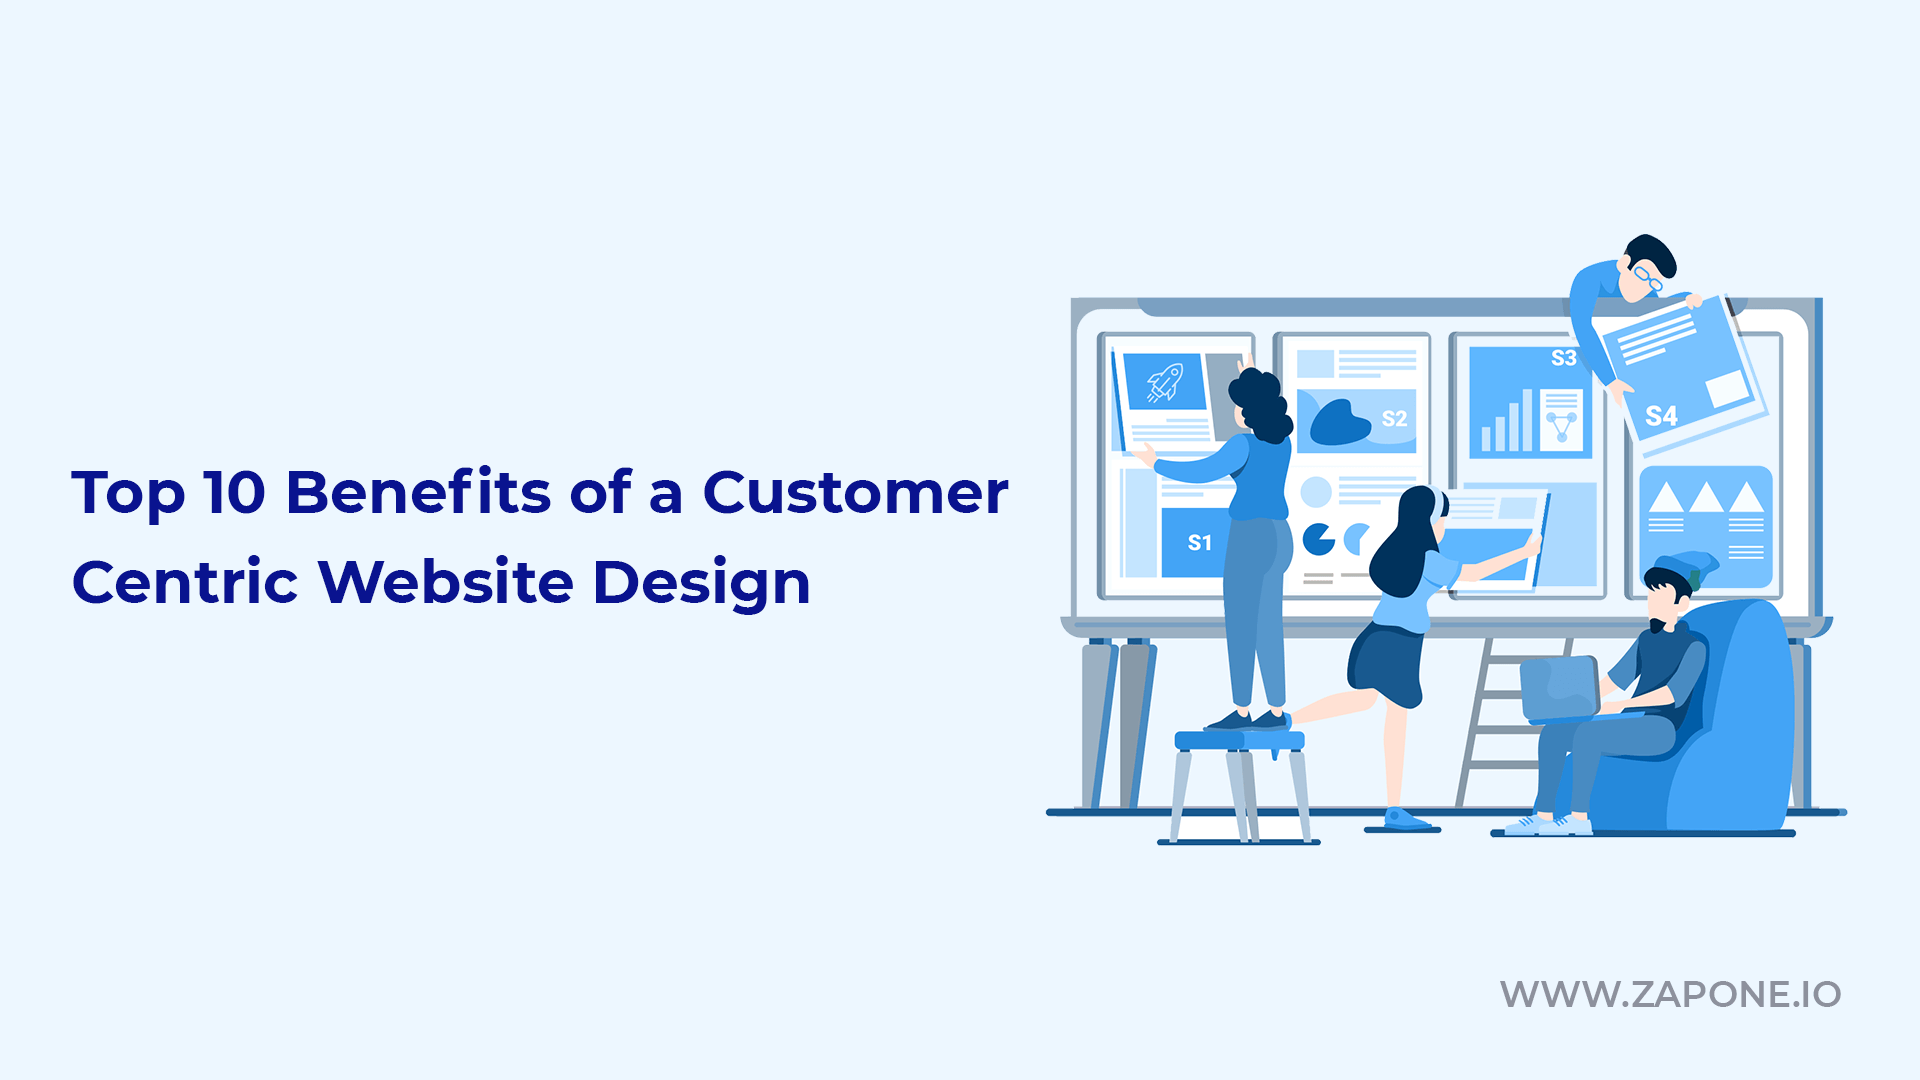 Top 10 benefits of a customer centric web design